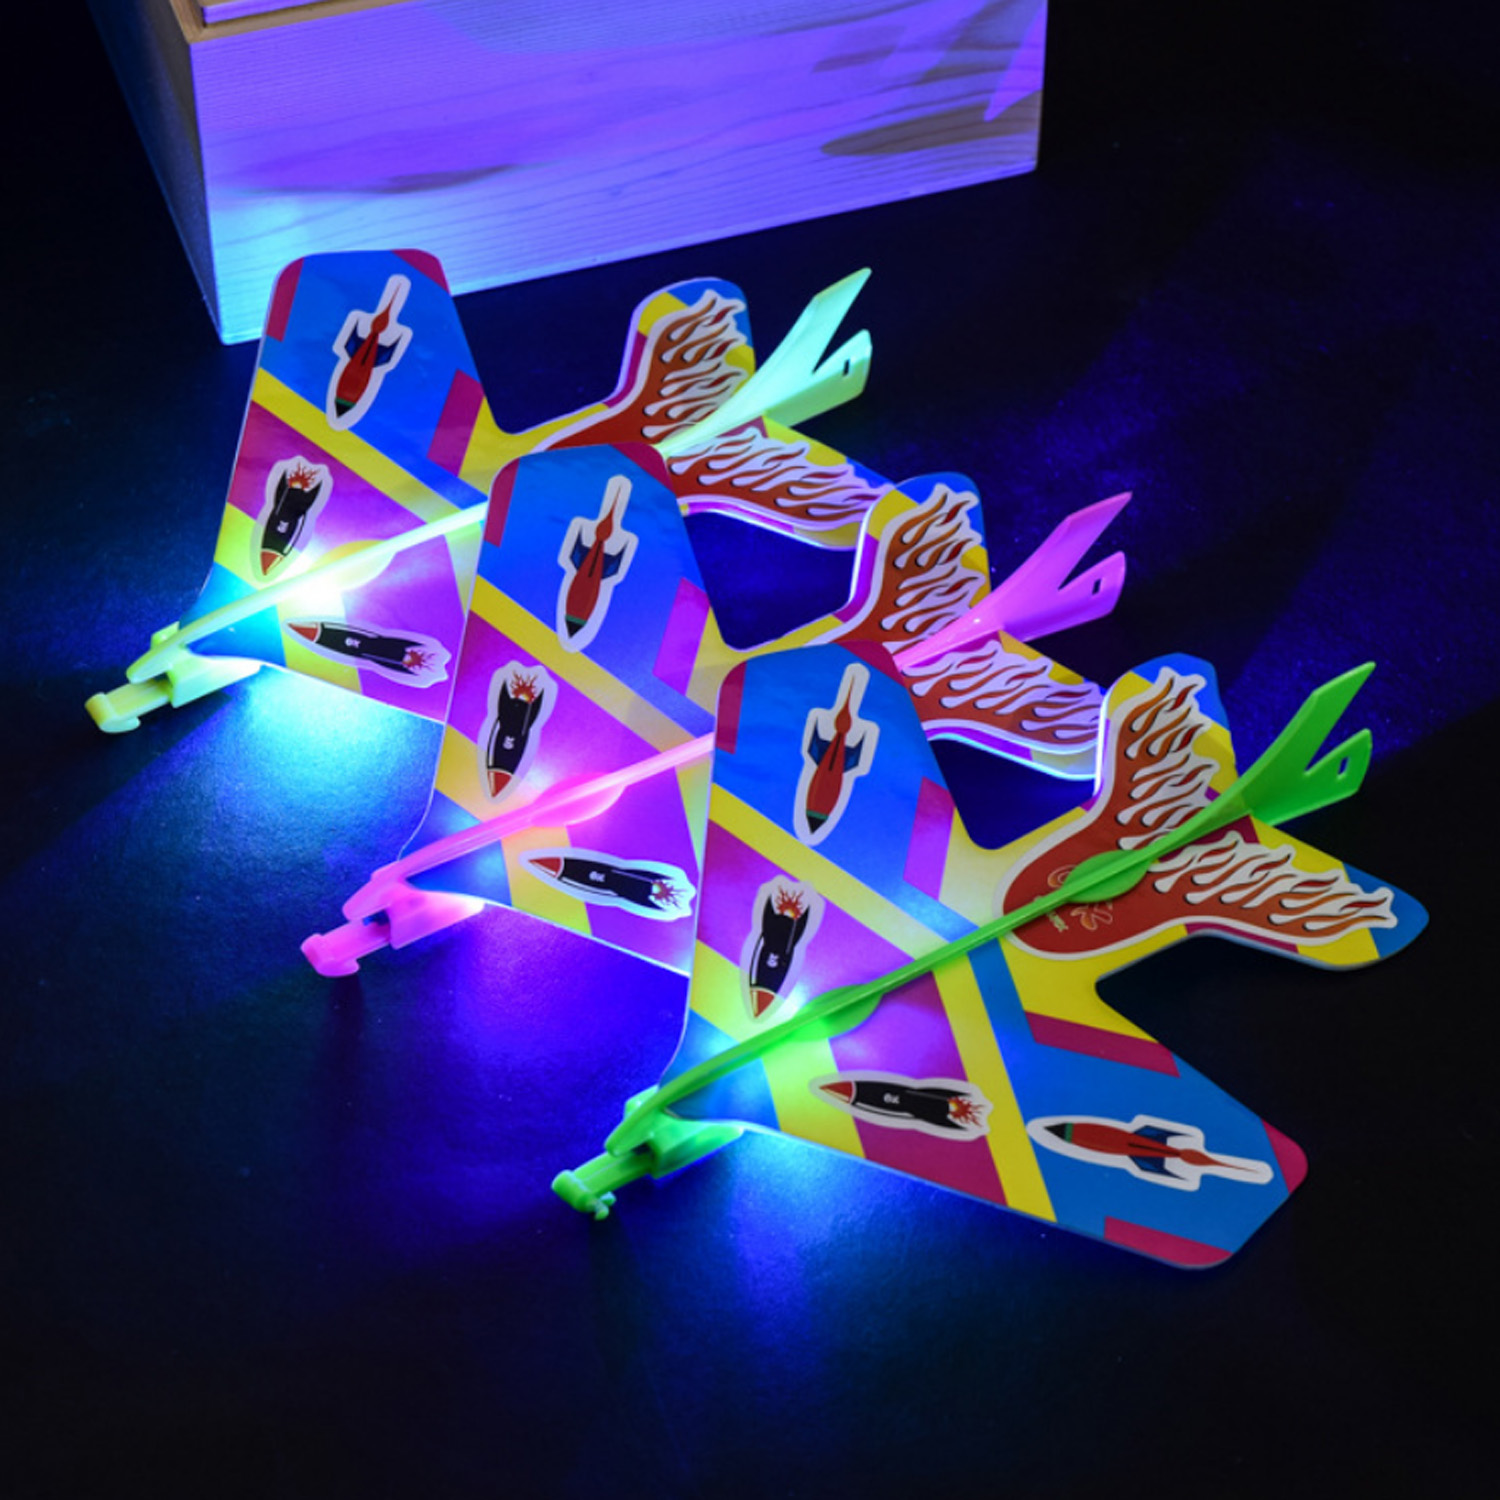 Cute Light Plane DIY Flash Ejection Slingshot Aircraft Toys for Kids Children Gifts Party Favor Supplies